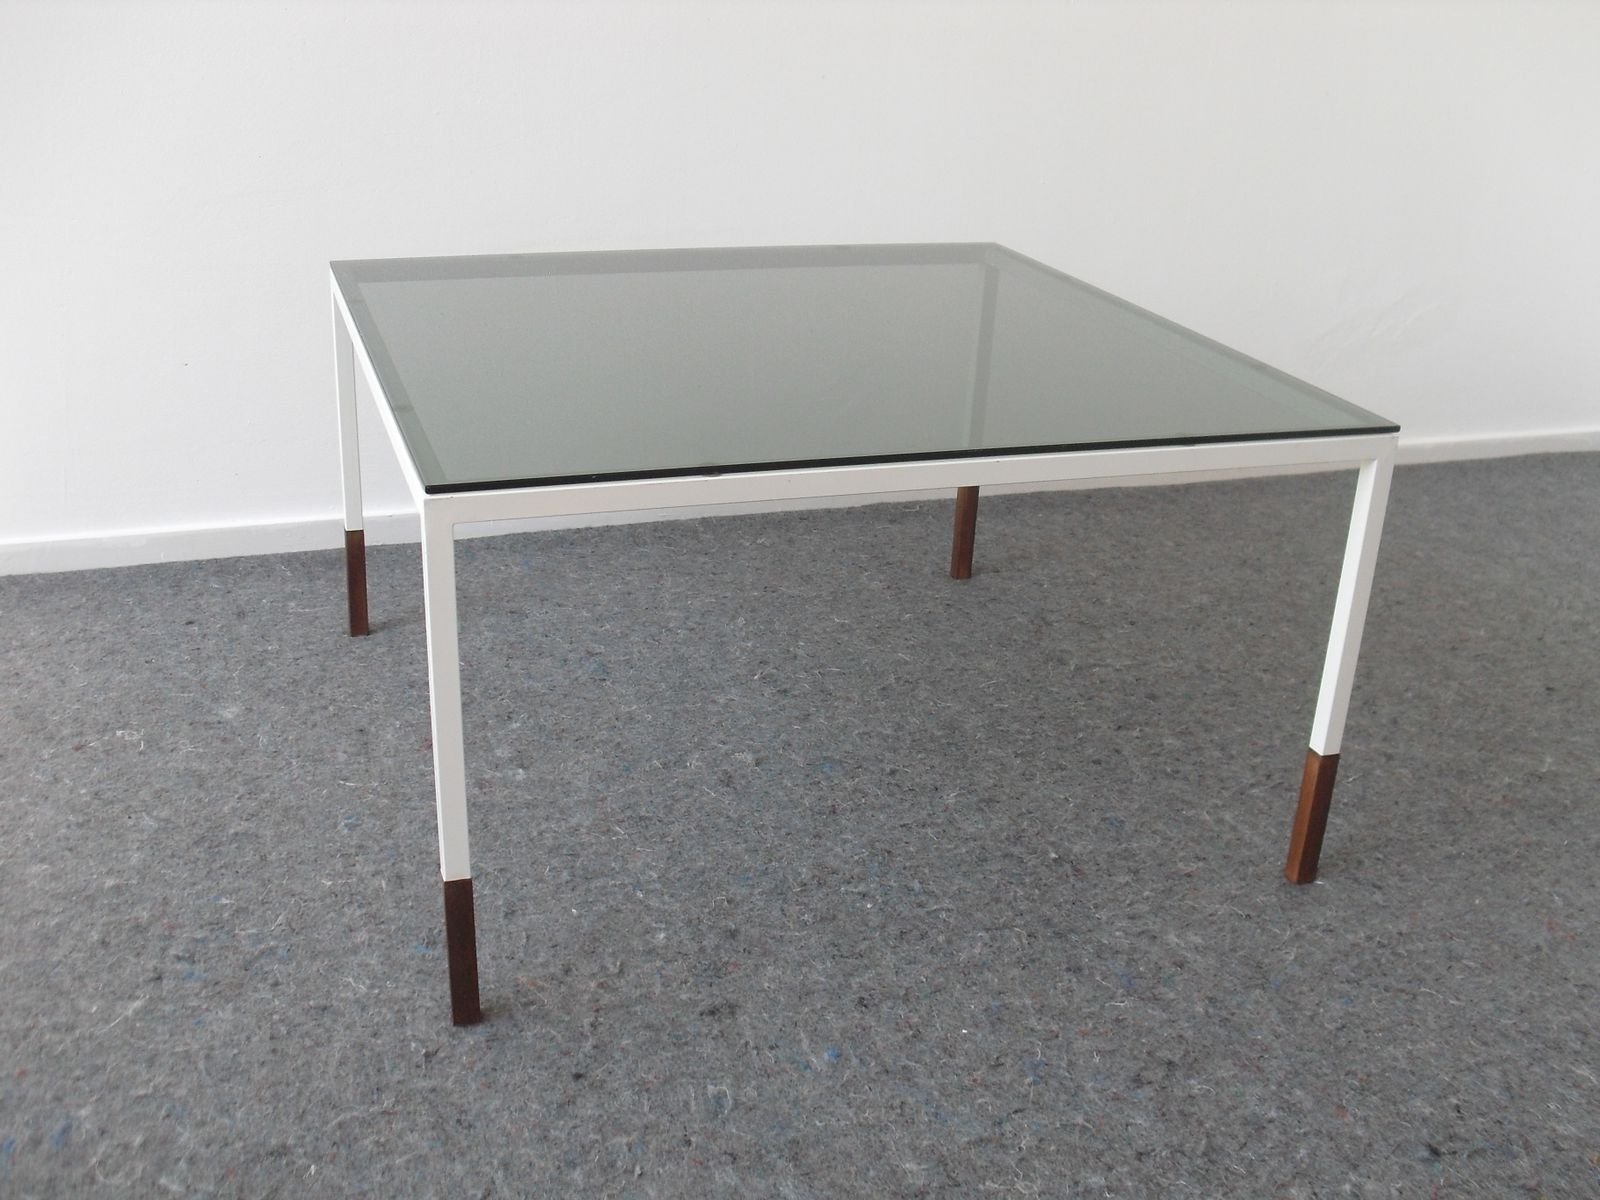 Most Current Minimalist Coffee Tables In Dutch Minimalist Coffee Table, 1960S For Sale At Pamono (View 13 of 20)